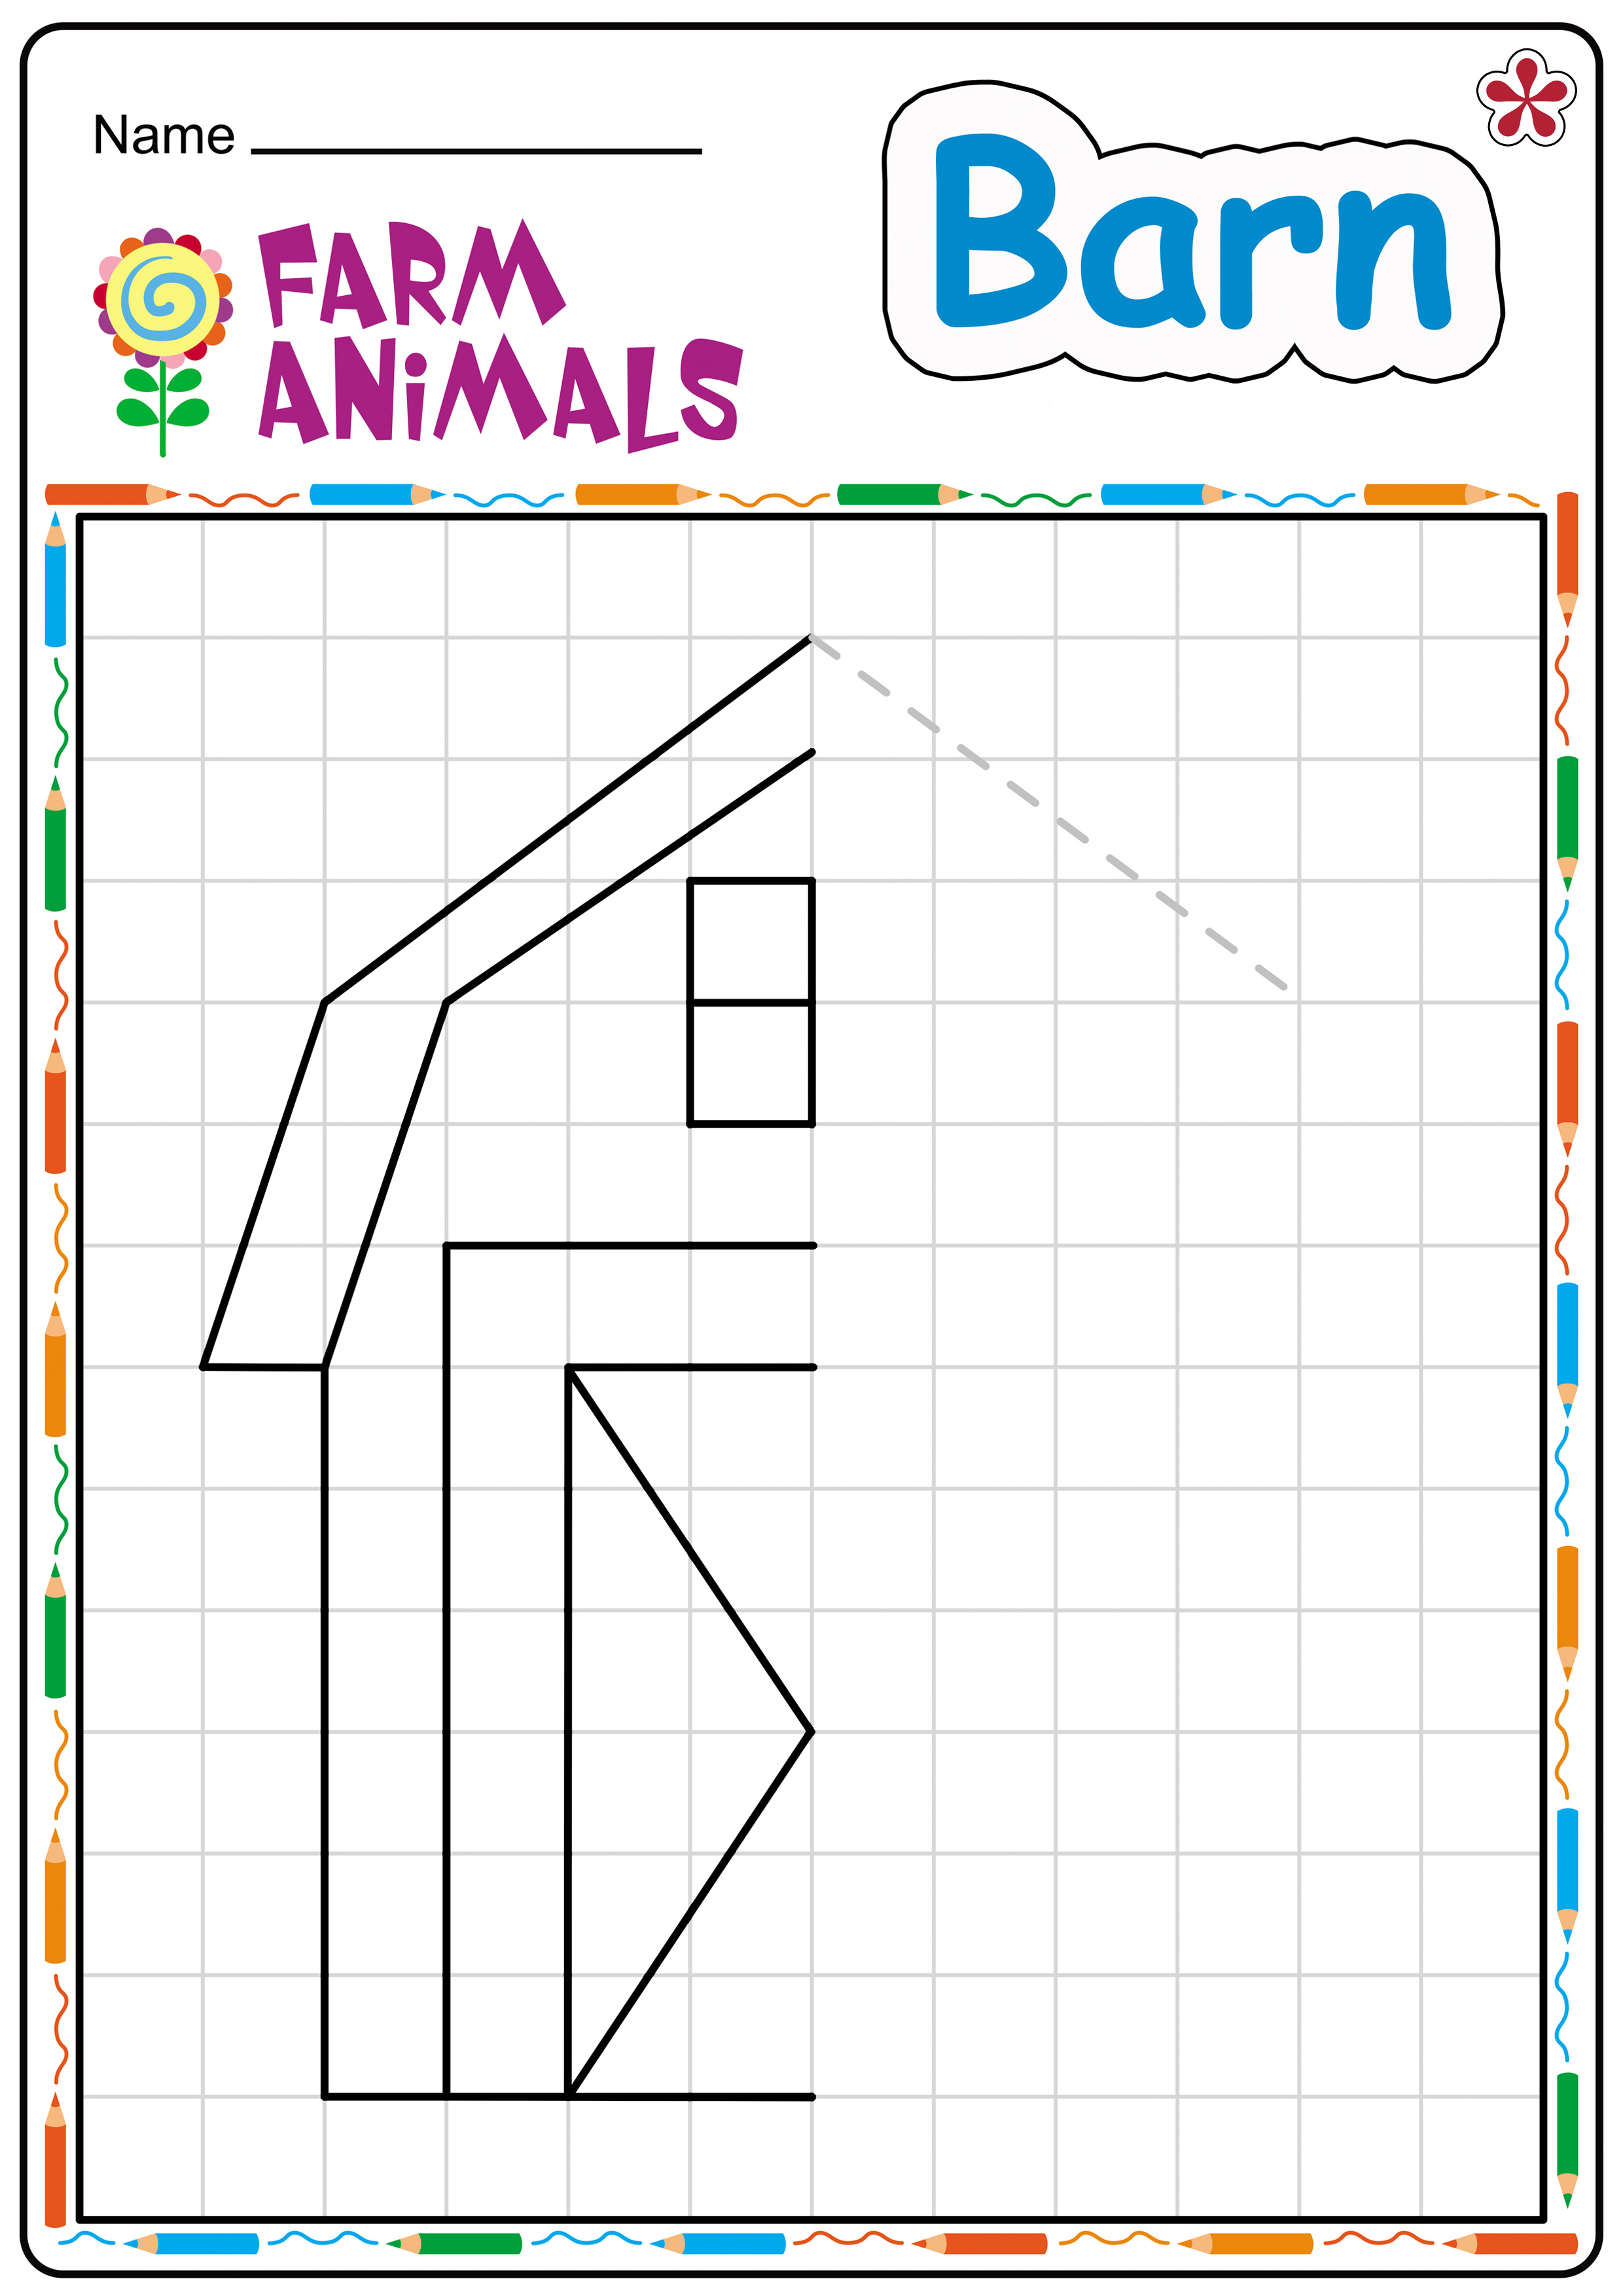 Free Printable Farm Animal Worksheets For Preschoolers